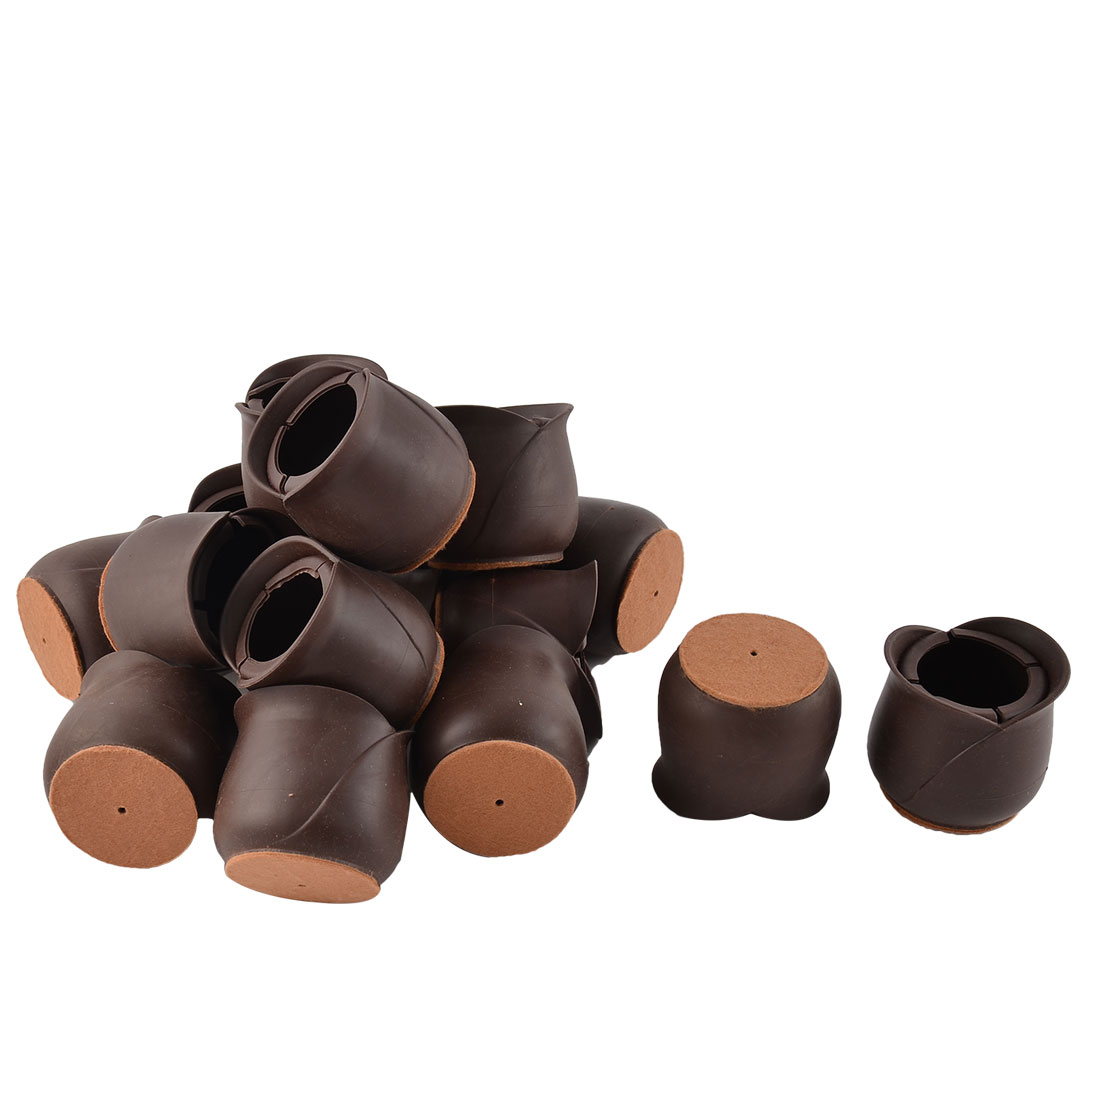 Silicone Flower Shaped Floor Protecting Pad Table Leg Cover Cap Chocolate Color 6.5 x 6cm 16pcs